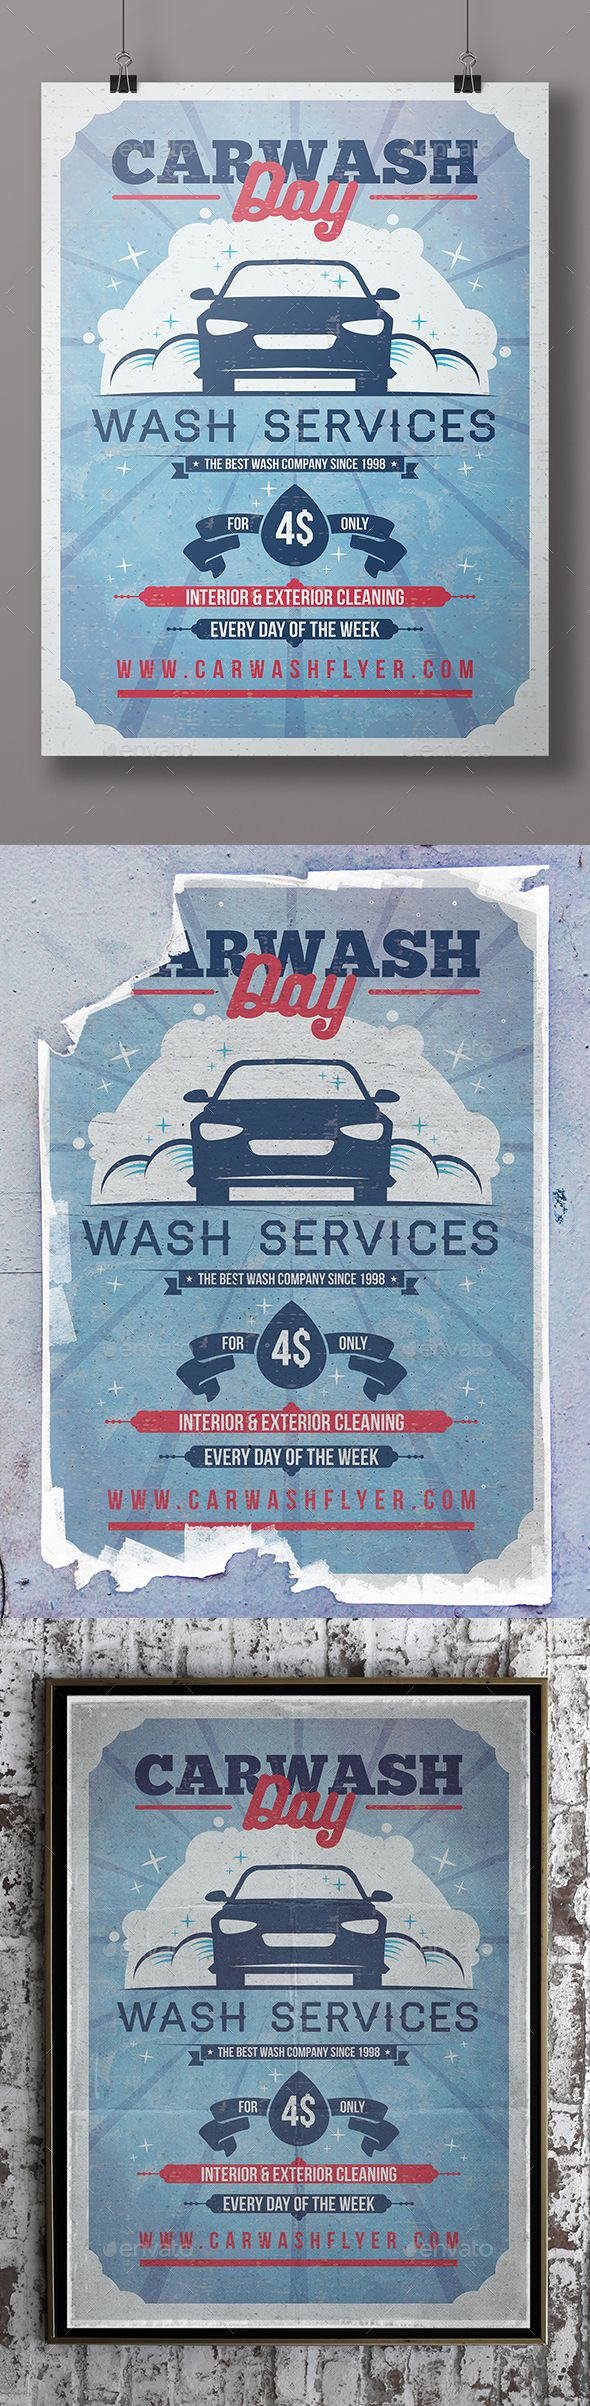 Car Wash Flyer Template PSD. Download here: http://graphicriver.net/item/car-wash-flyer-template/16141693?ref=ksioks